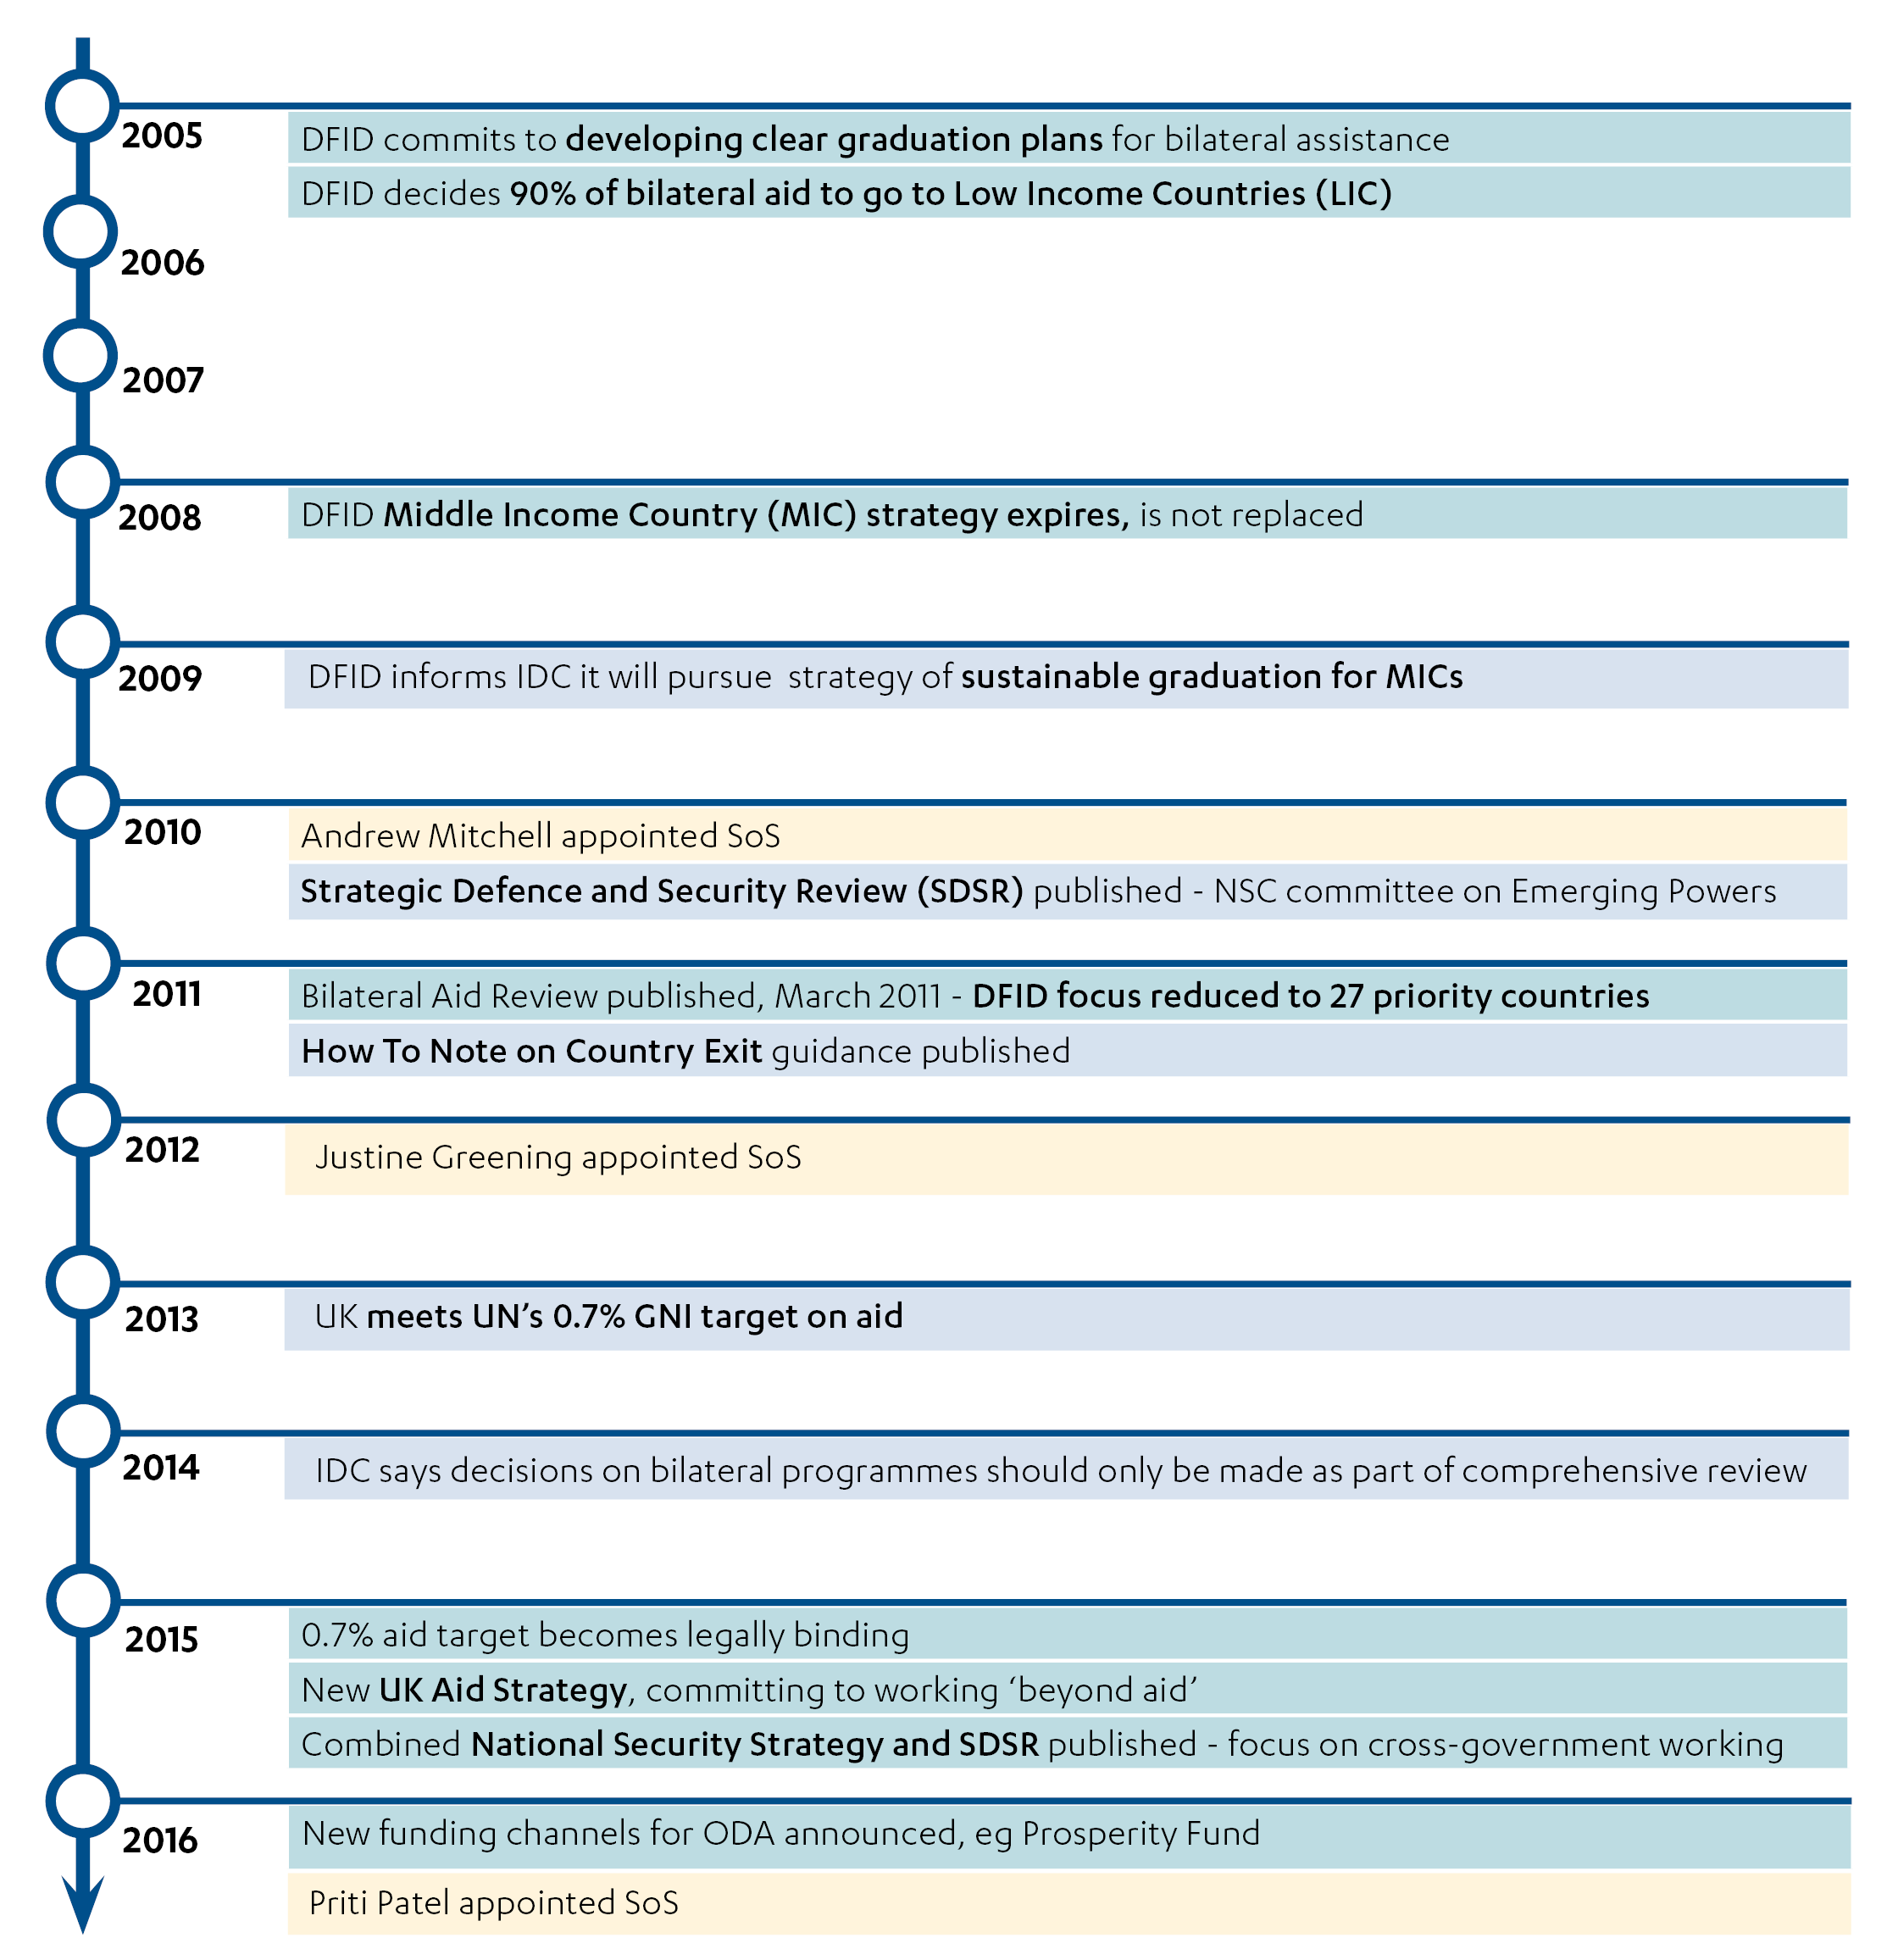 Timeline showing DFID's central approach to transition, 2005 to 2016